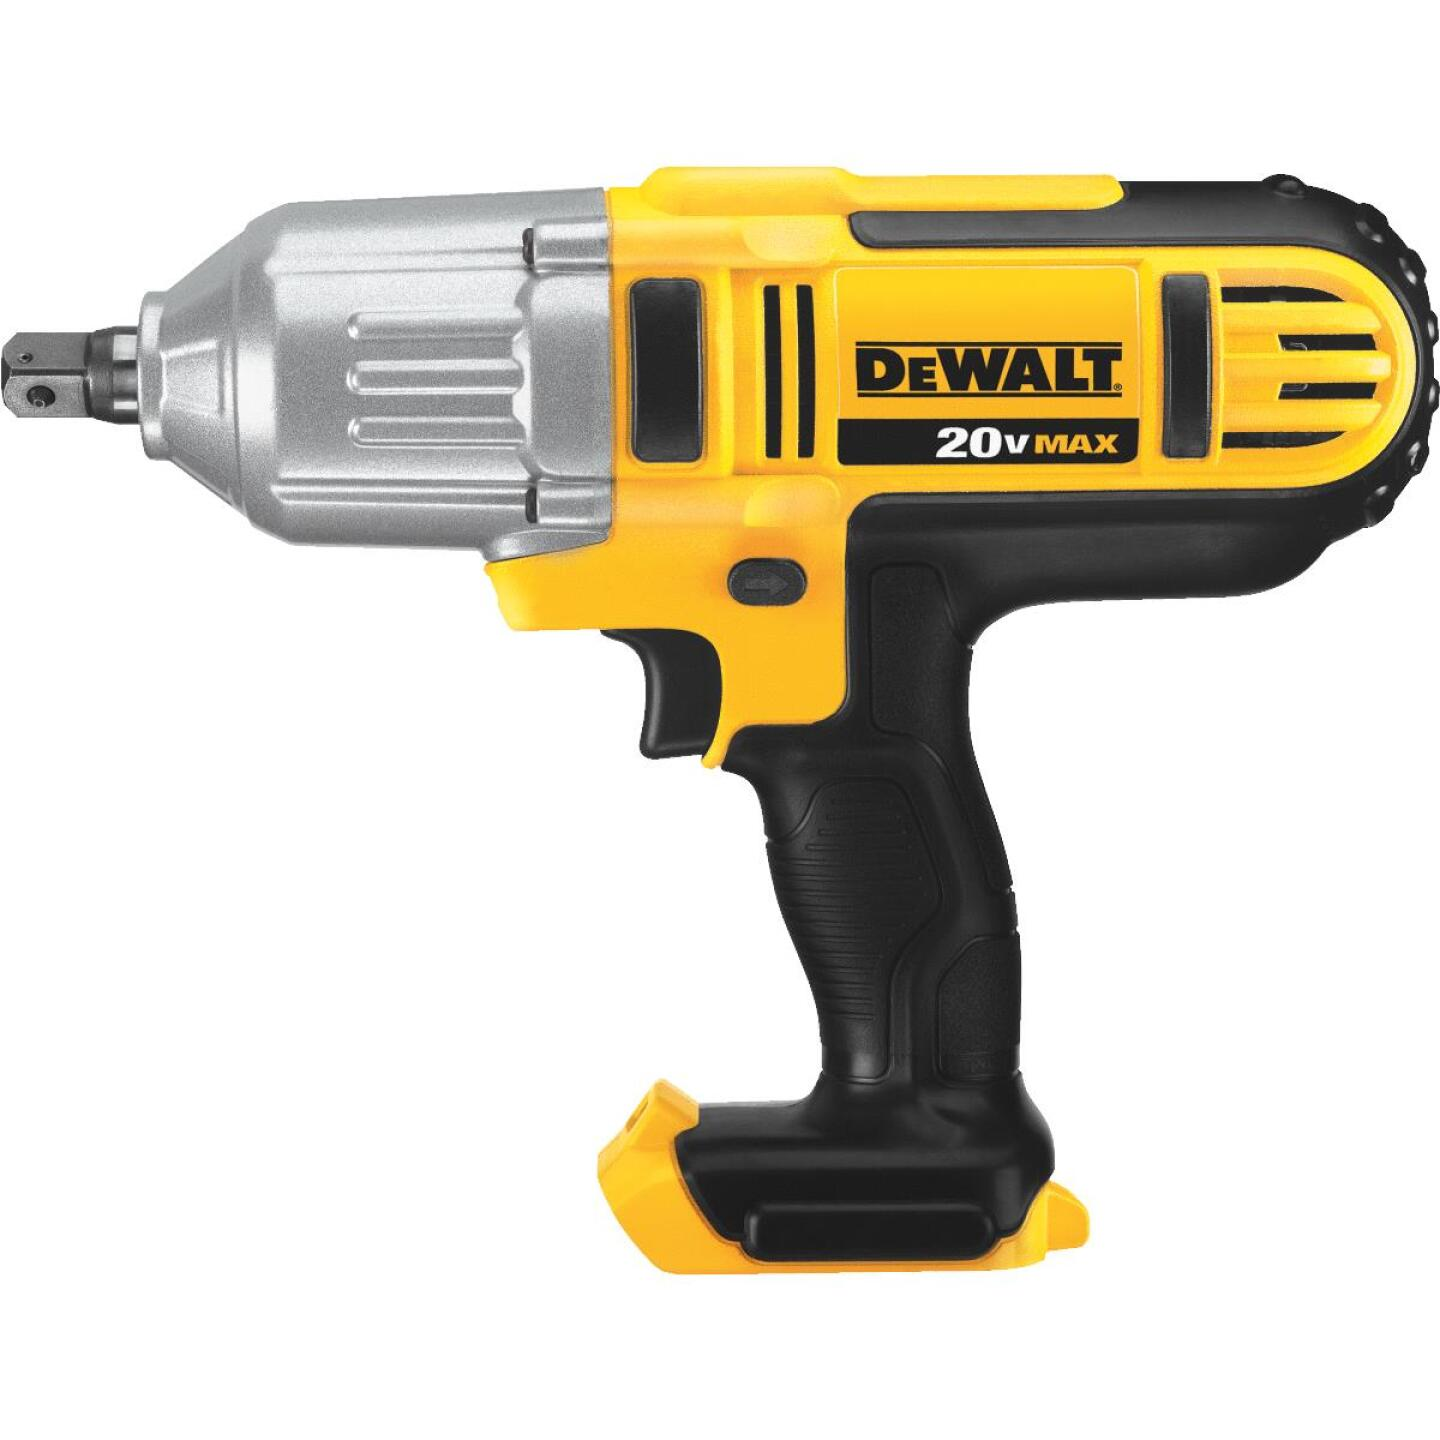 DeWalt 20 Volt MAX Lithium-Ion 1/2 In. High Torque Cordless Impact Wrench (Bare Tool) Image 1